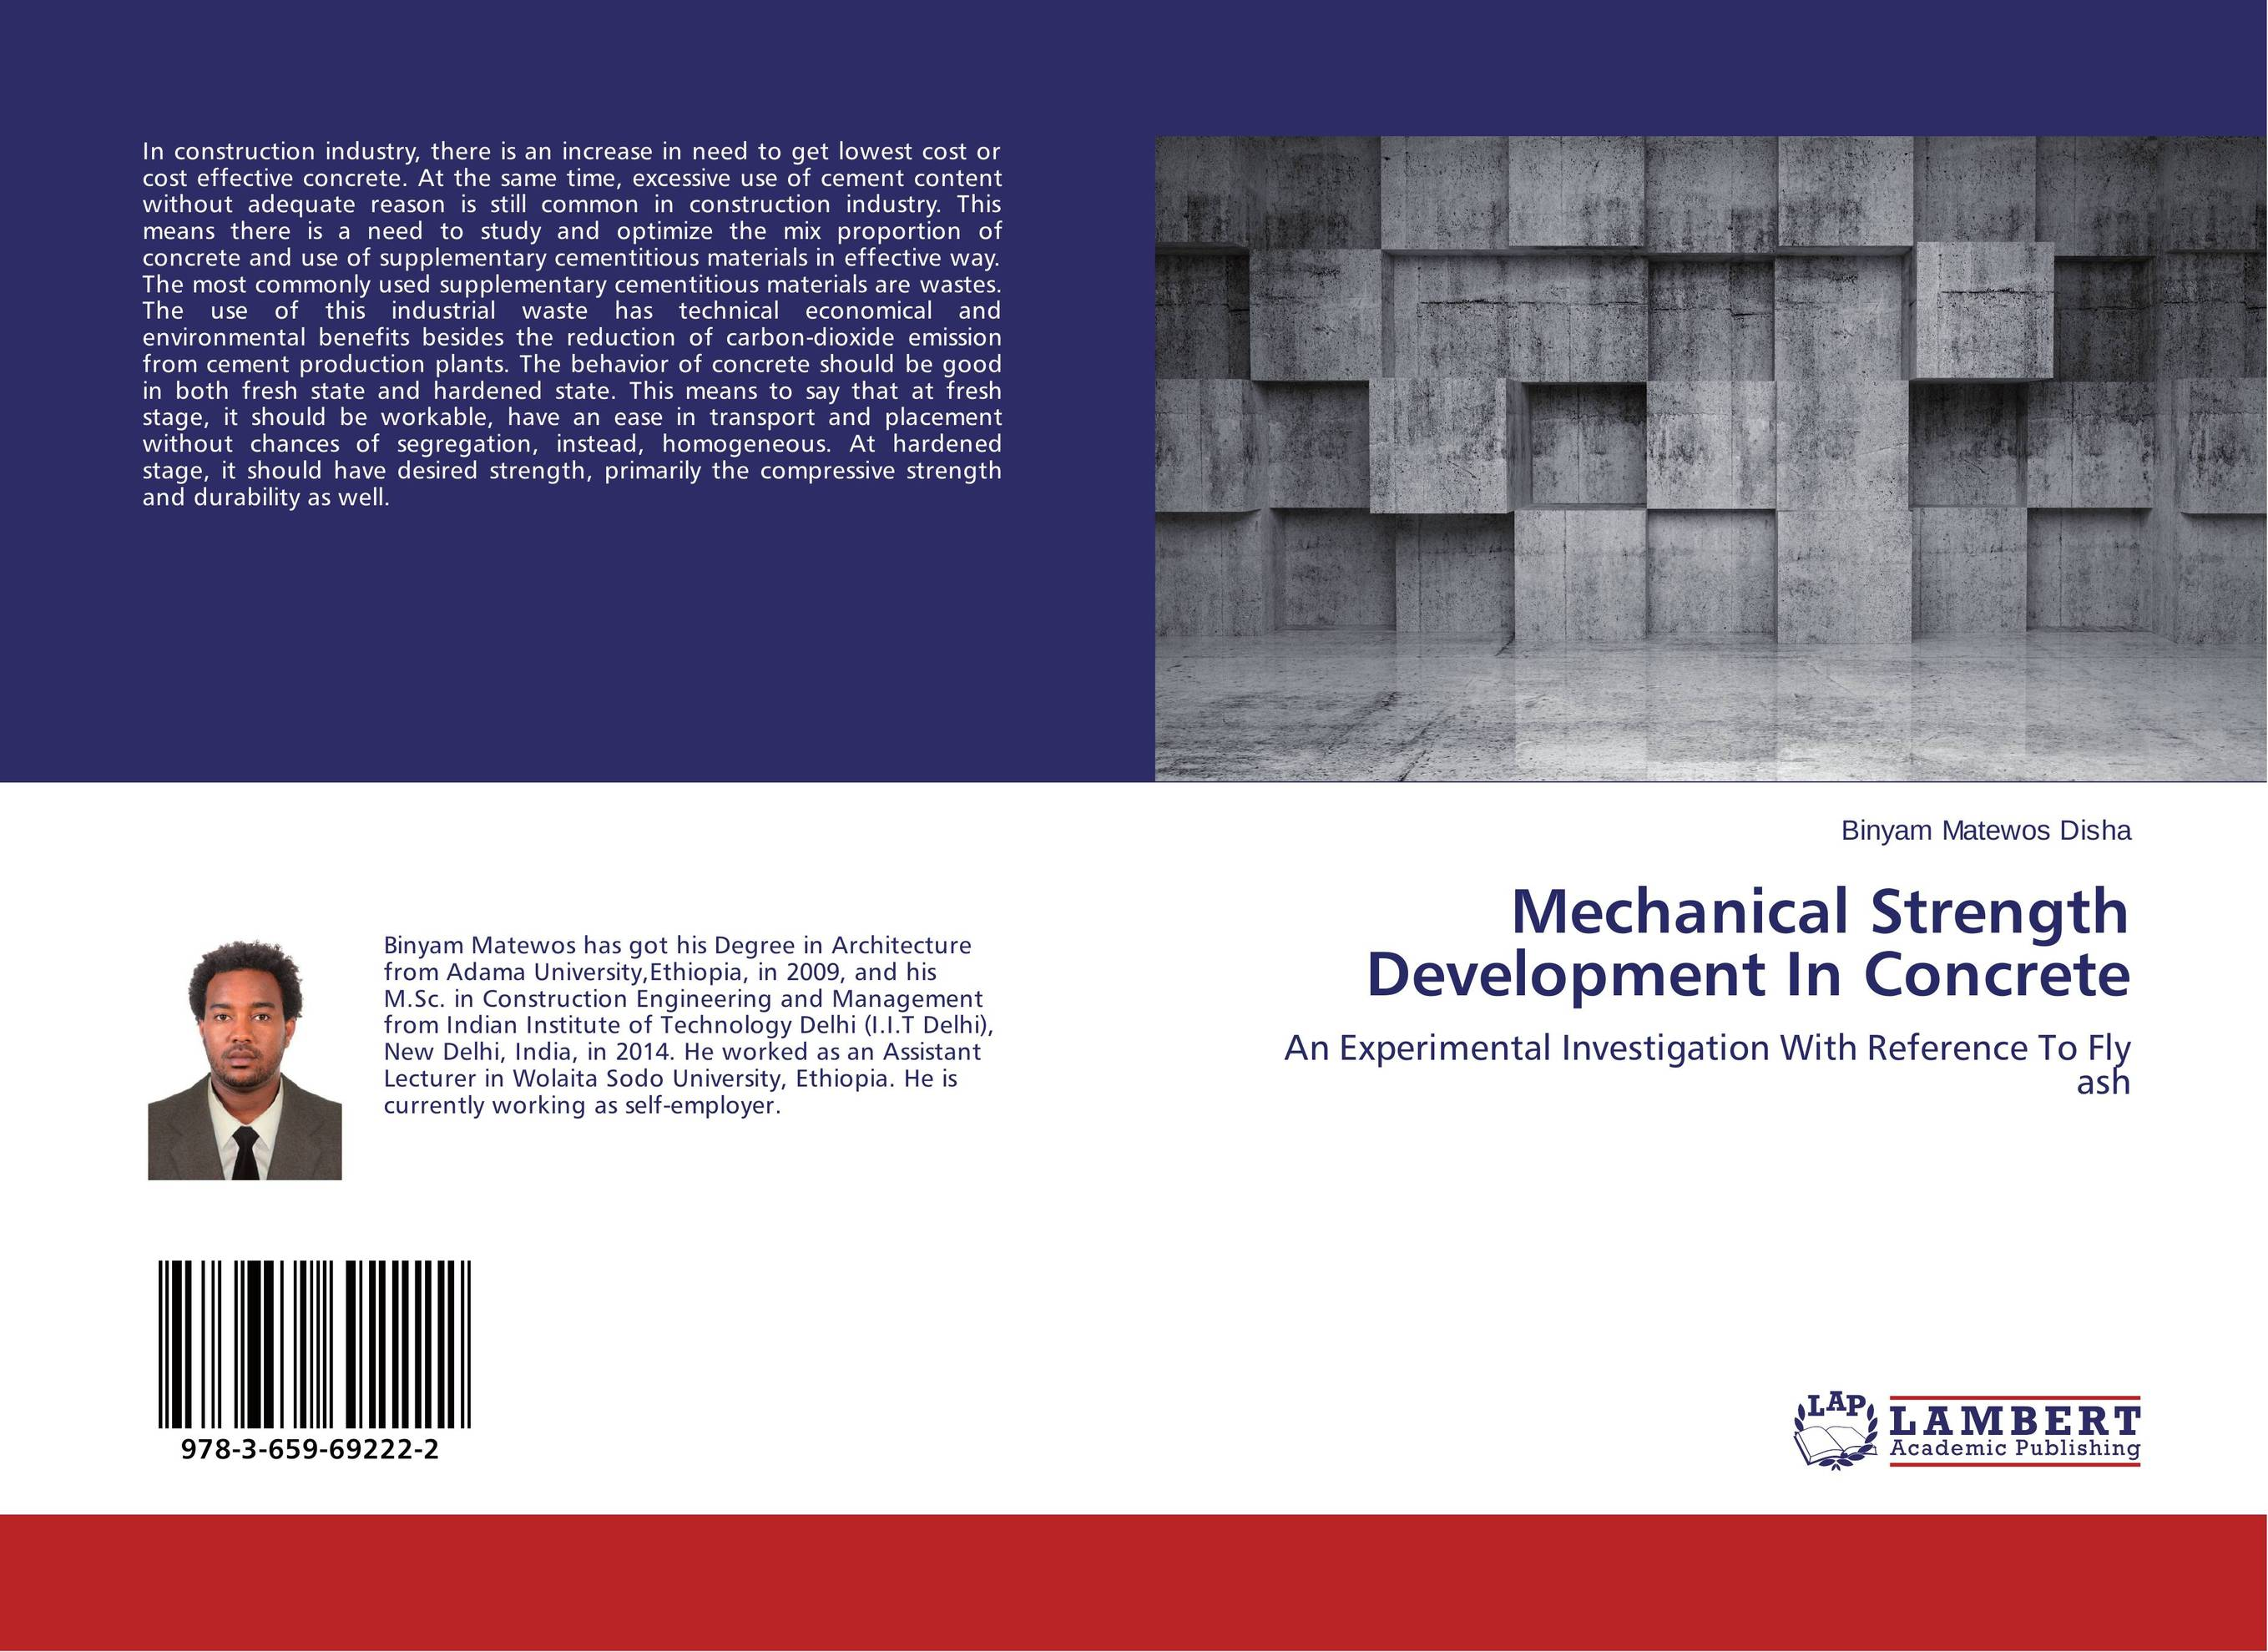 Mechanical Strength Development In Concrete industrial wastes in concrete alternative to cement